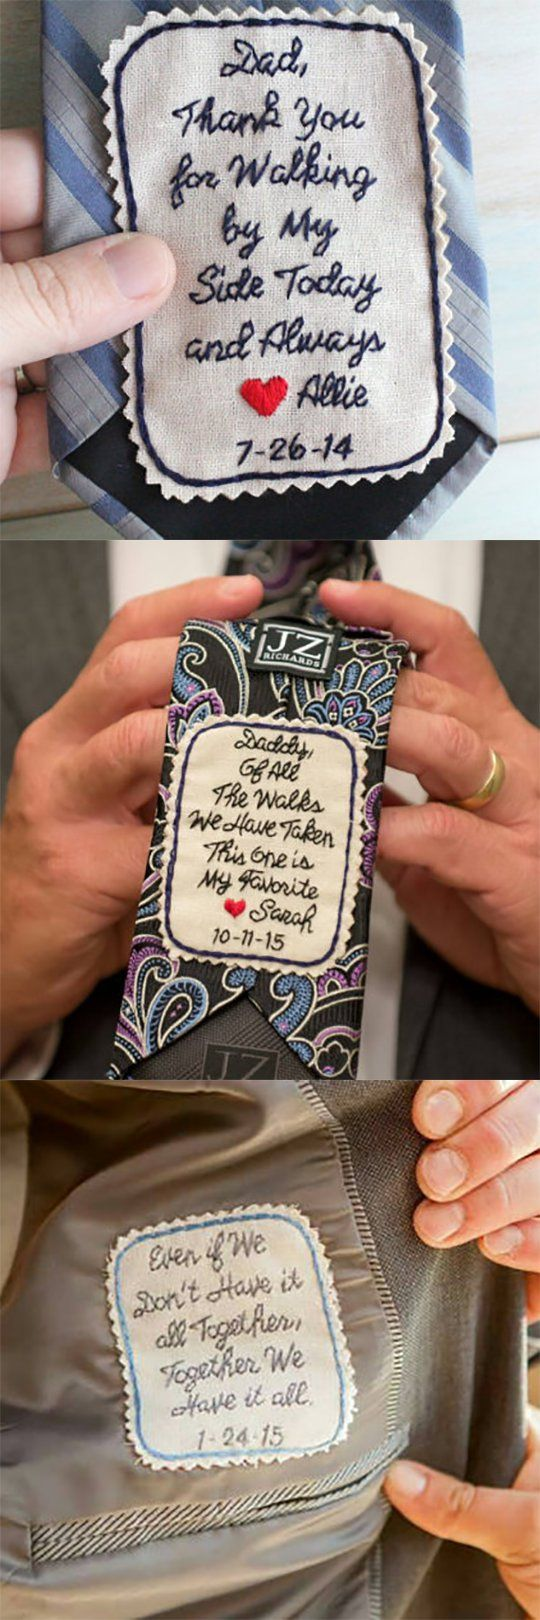 Wedding tie patches are a great way to give your dad or groom a special note to wear close to his heart on your wedding day. These have the following messages (but you can order with anything you want. there's a link on the page): Thank you for walking by my side today and always; Of all the walks we have taken, this one is my favorite; even if we don't have it all together, together we have it all.